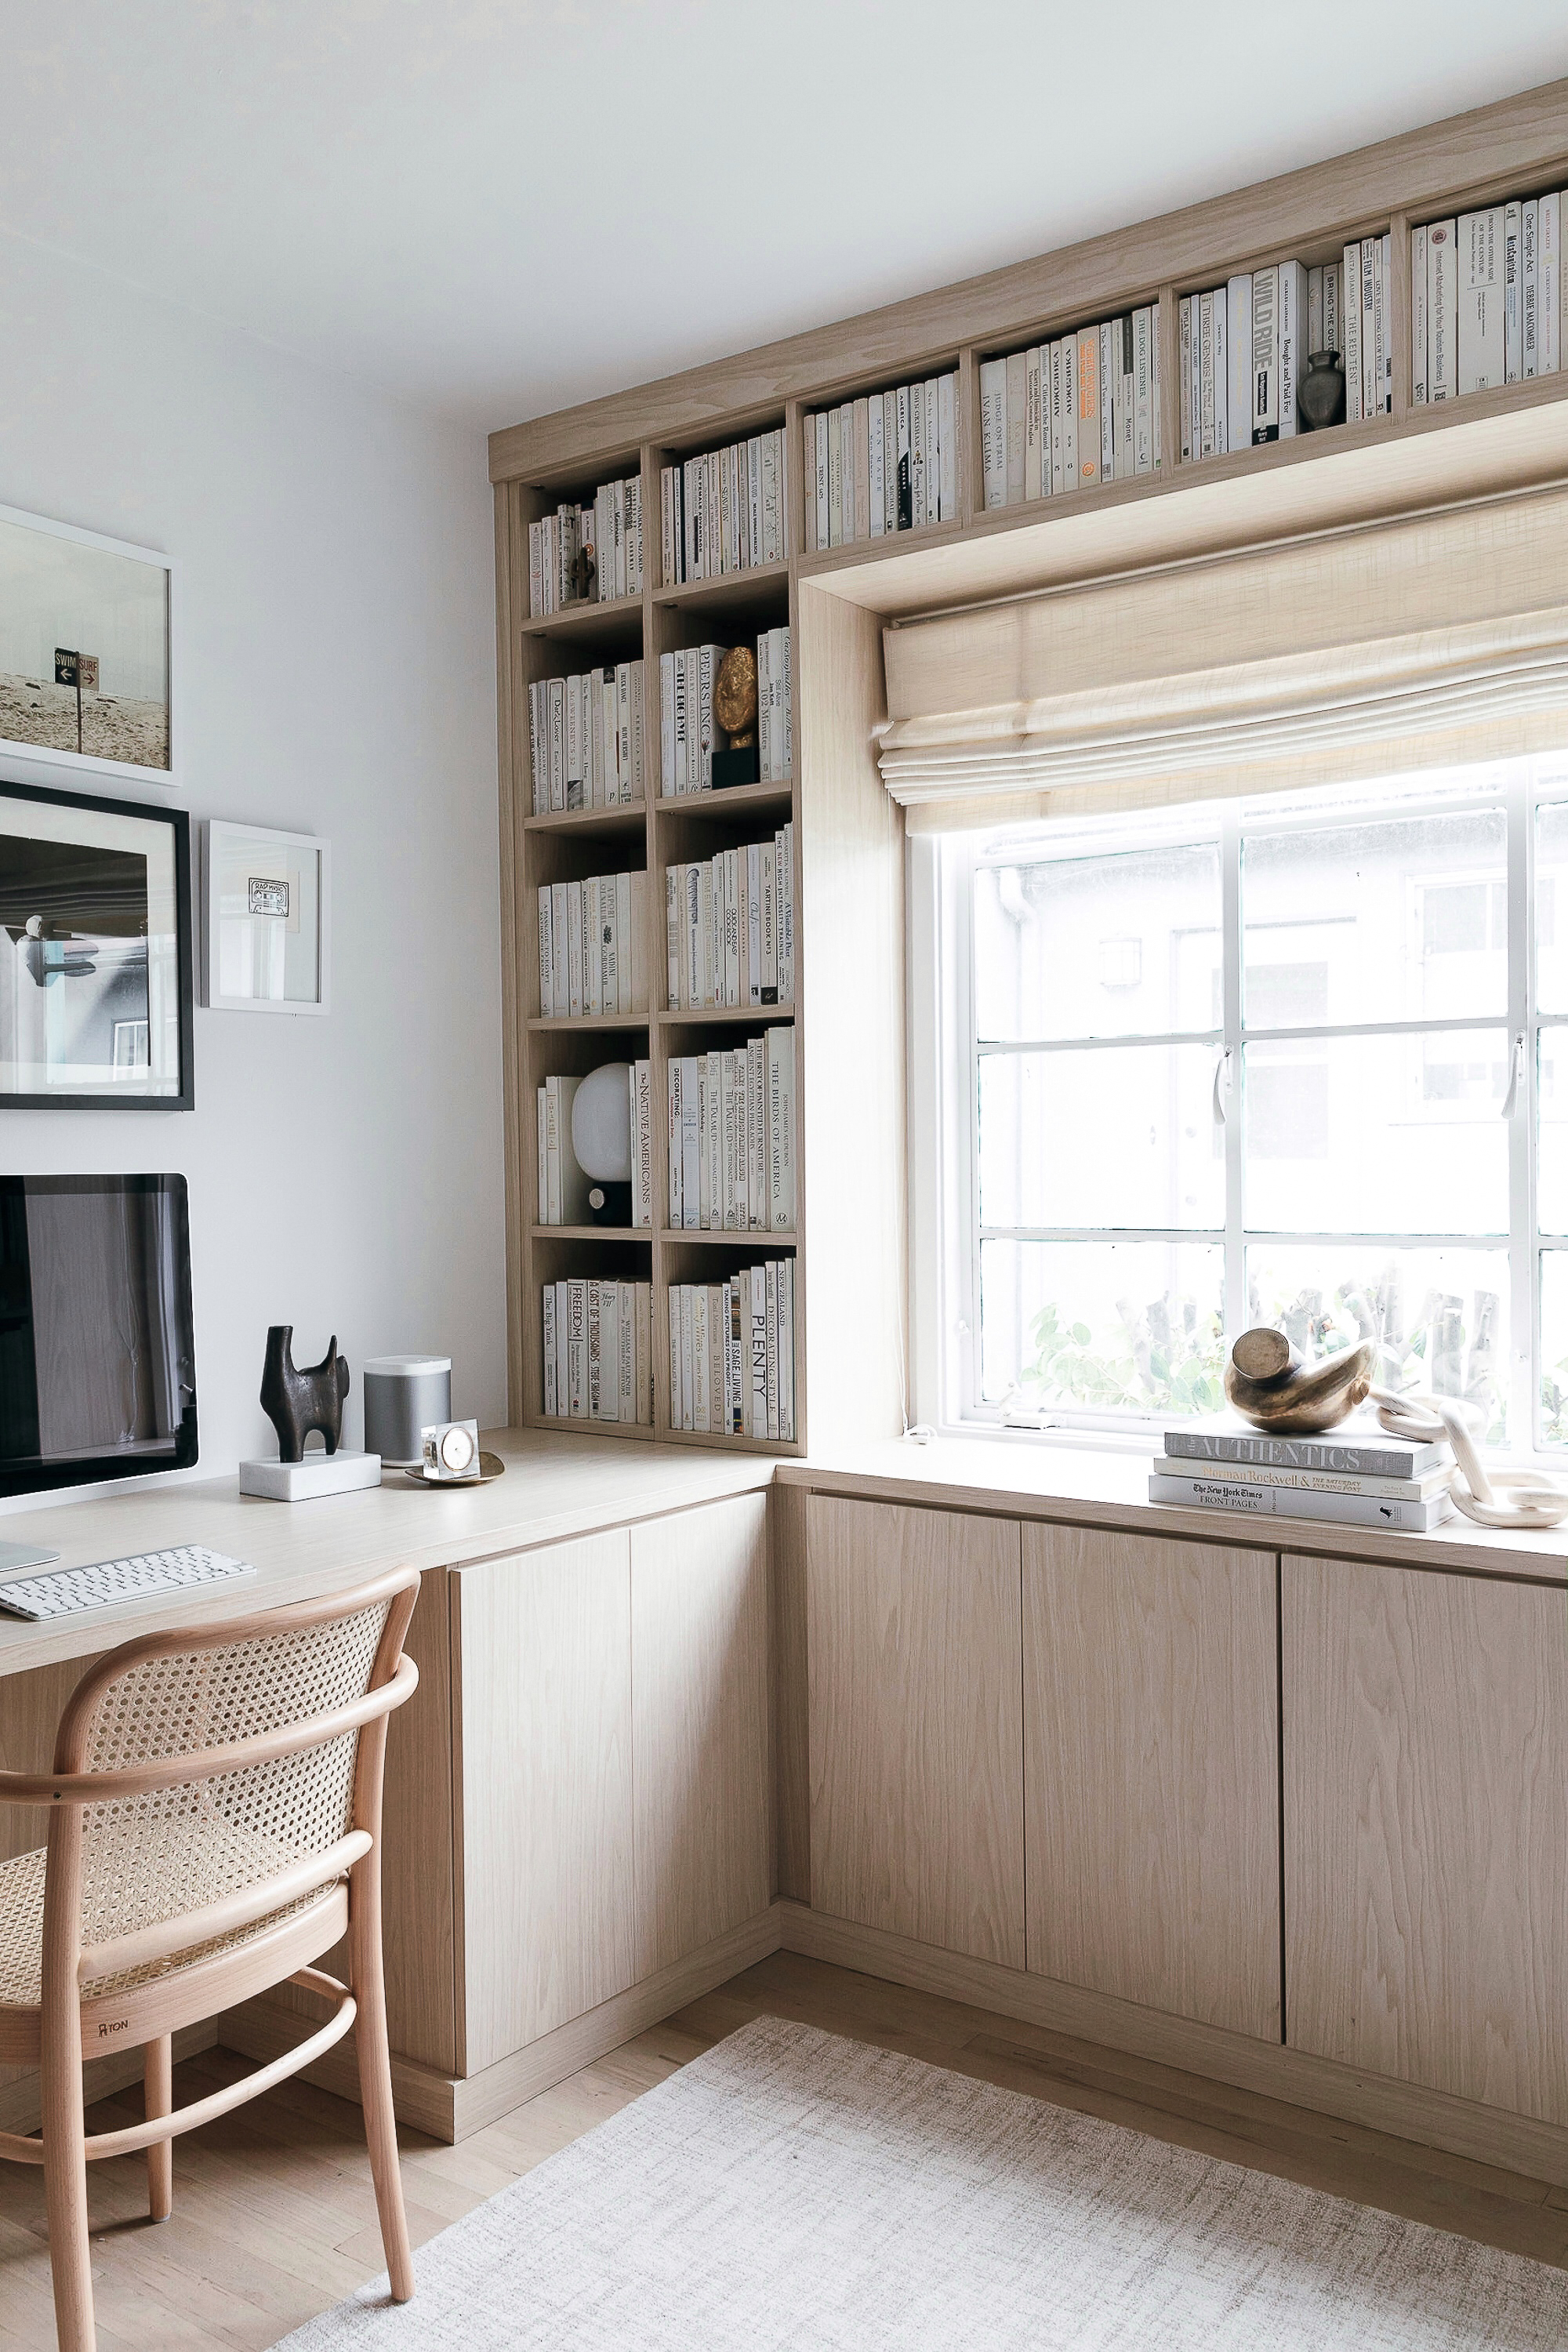 California Closets Built-in Bookshelves: Our Home Office